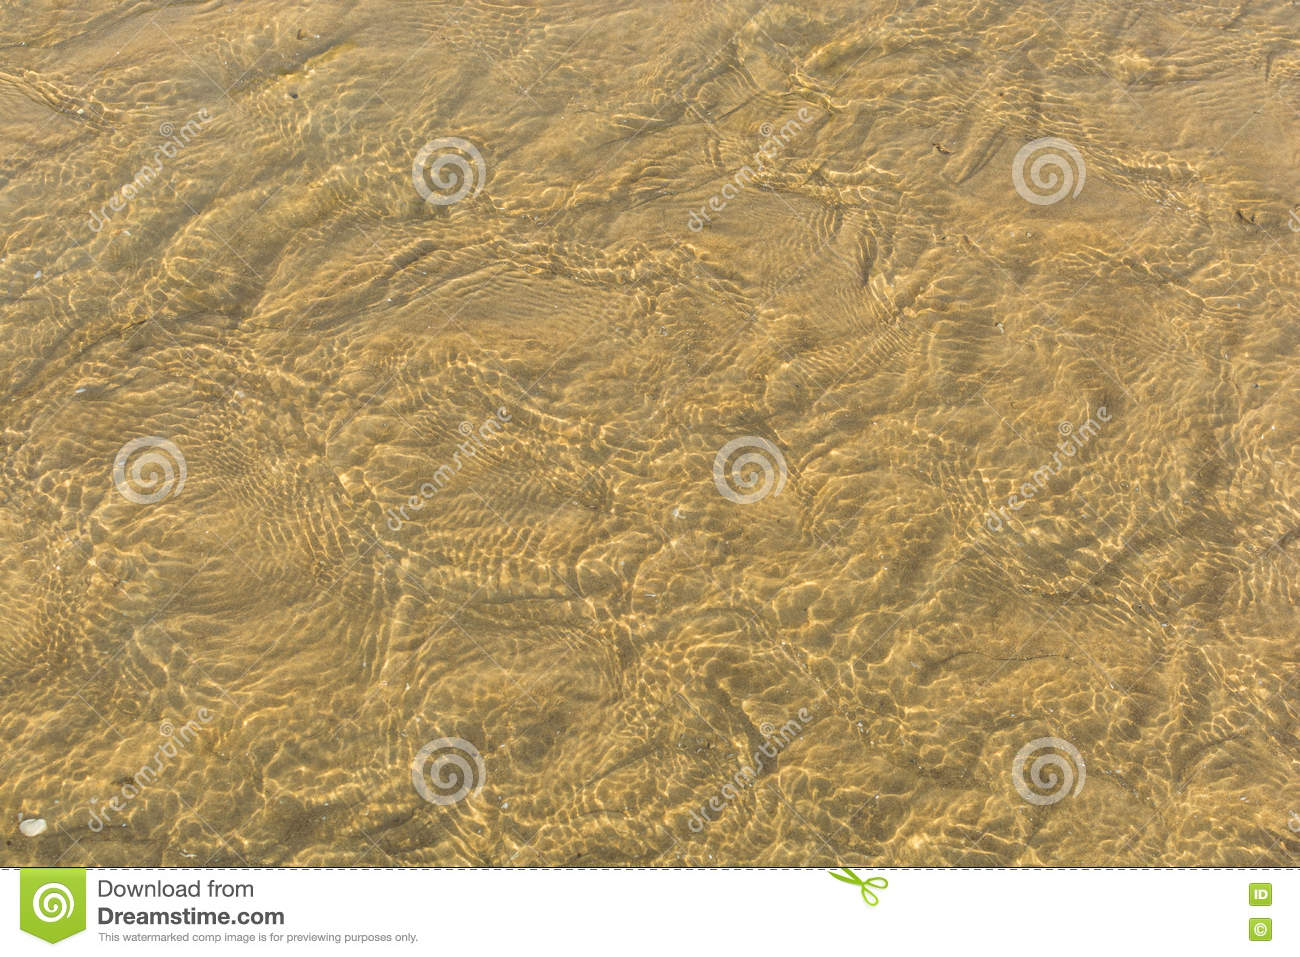 Abstract background of sand ripples under clear water at the beach